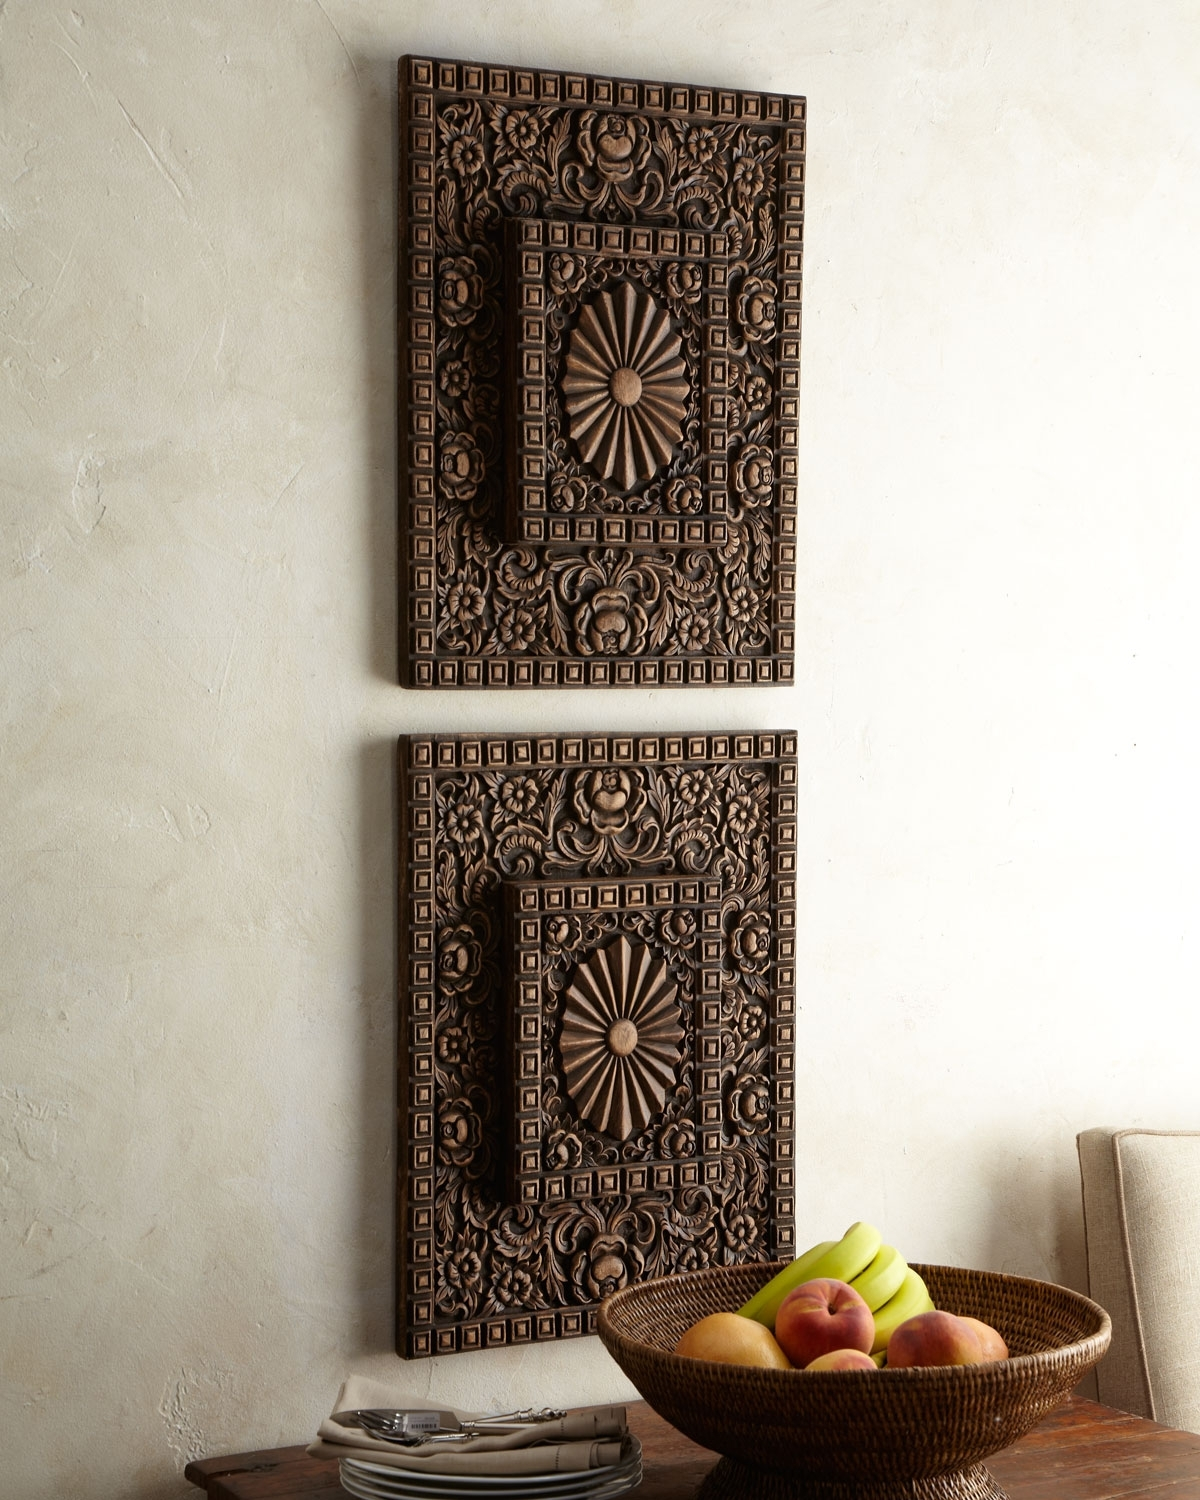 Home Decor Ideas – Wall Art Throughout Fretwork Wall Art (View 6 of 15)